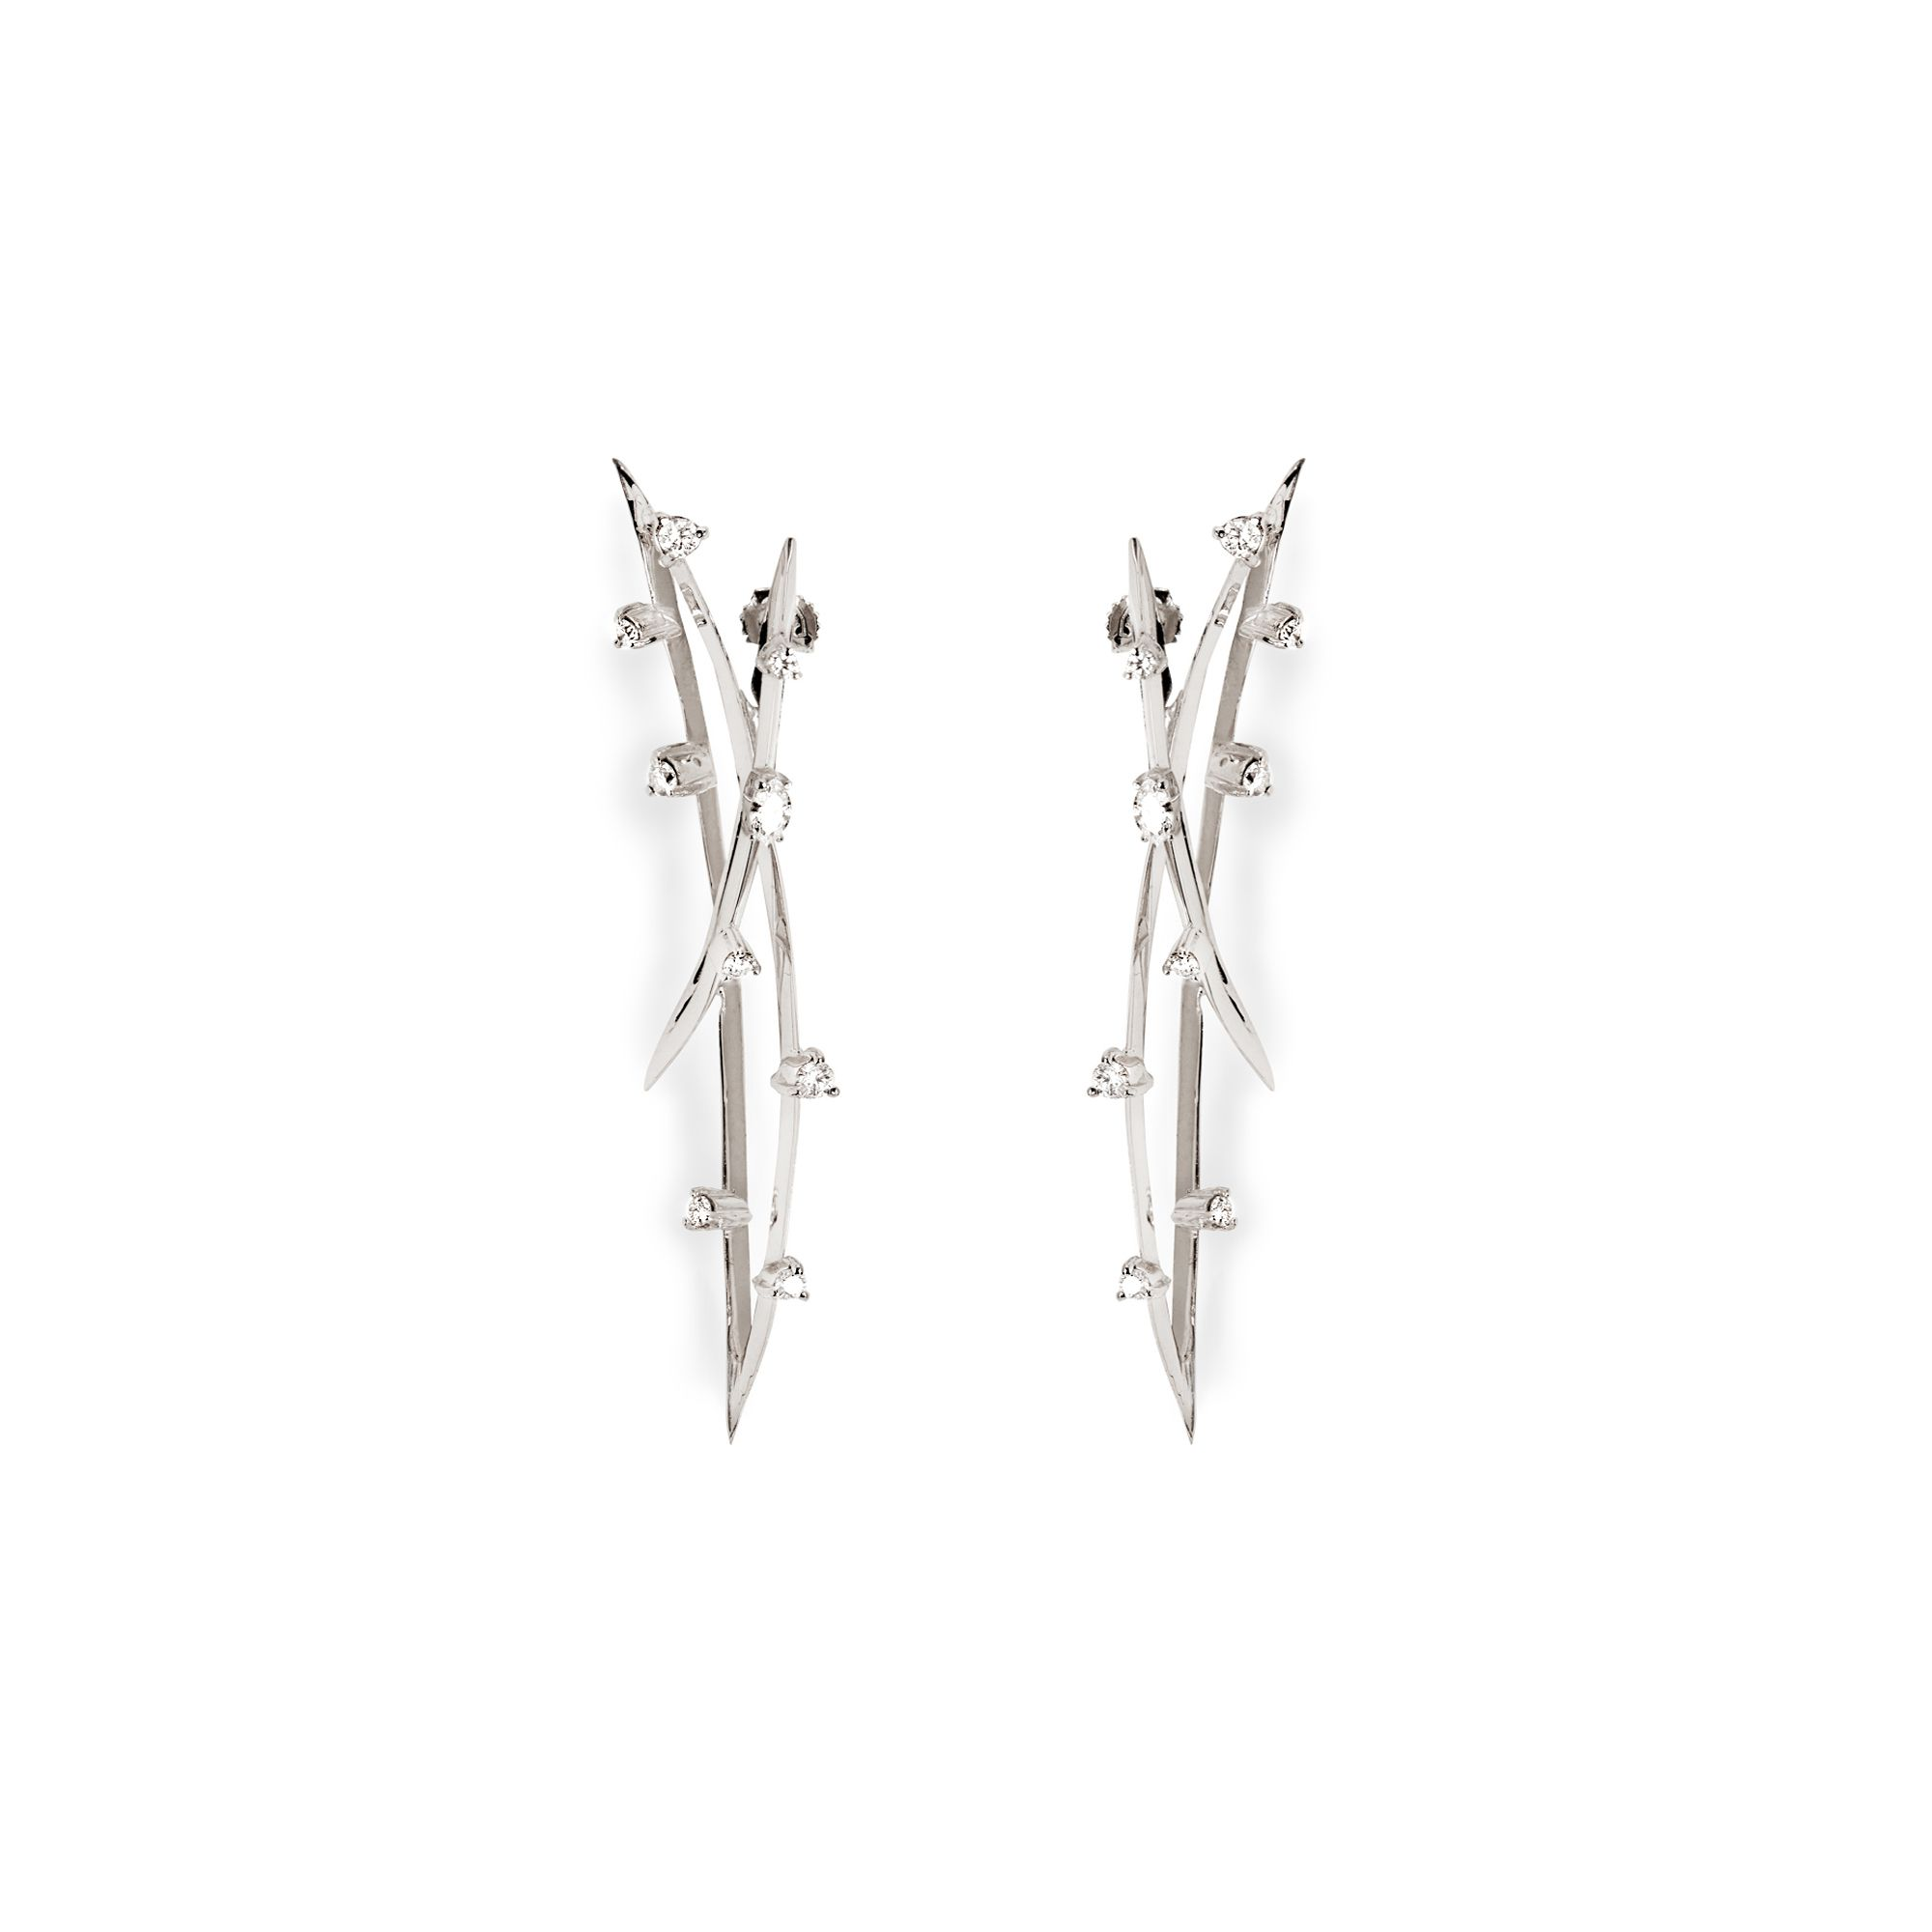 Double orbit earrings Earrings in white gold and diamonds